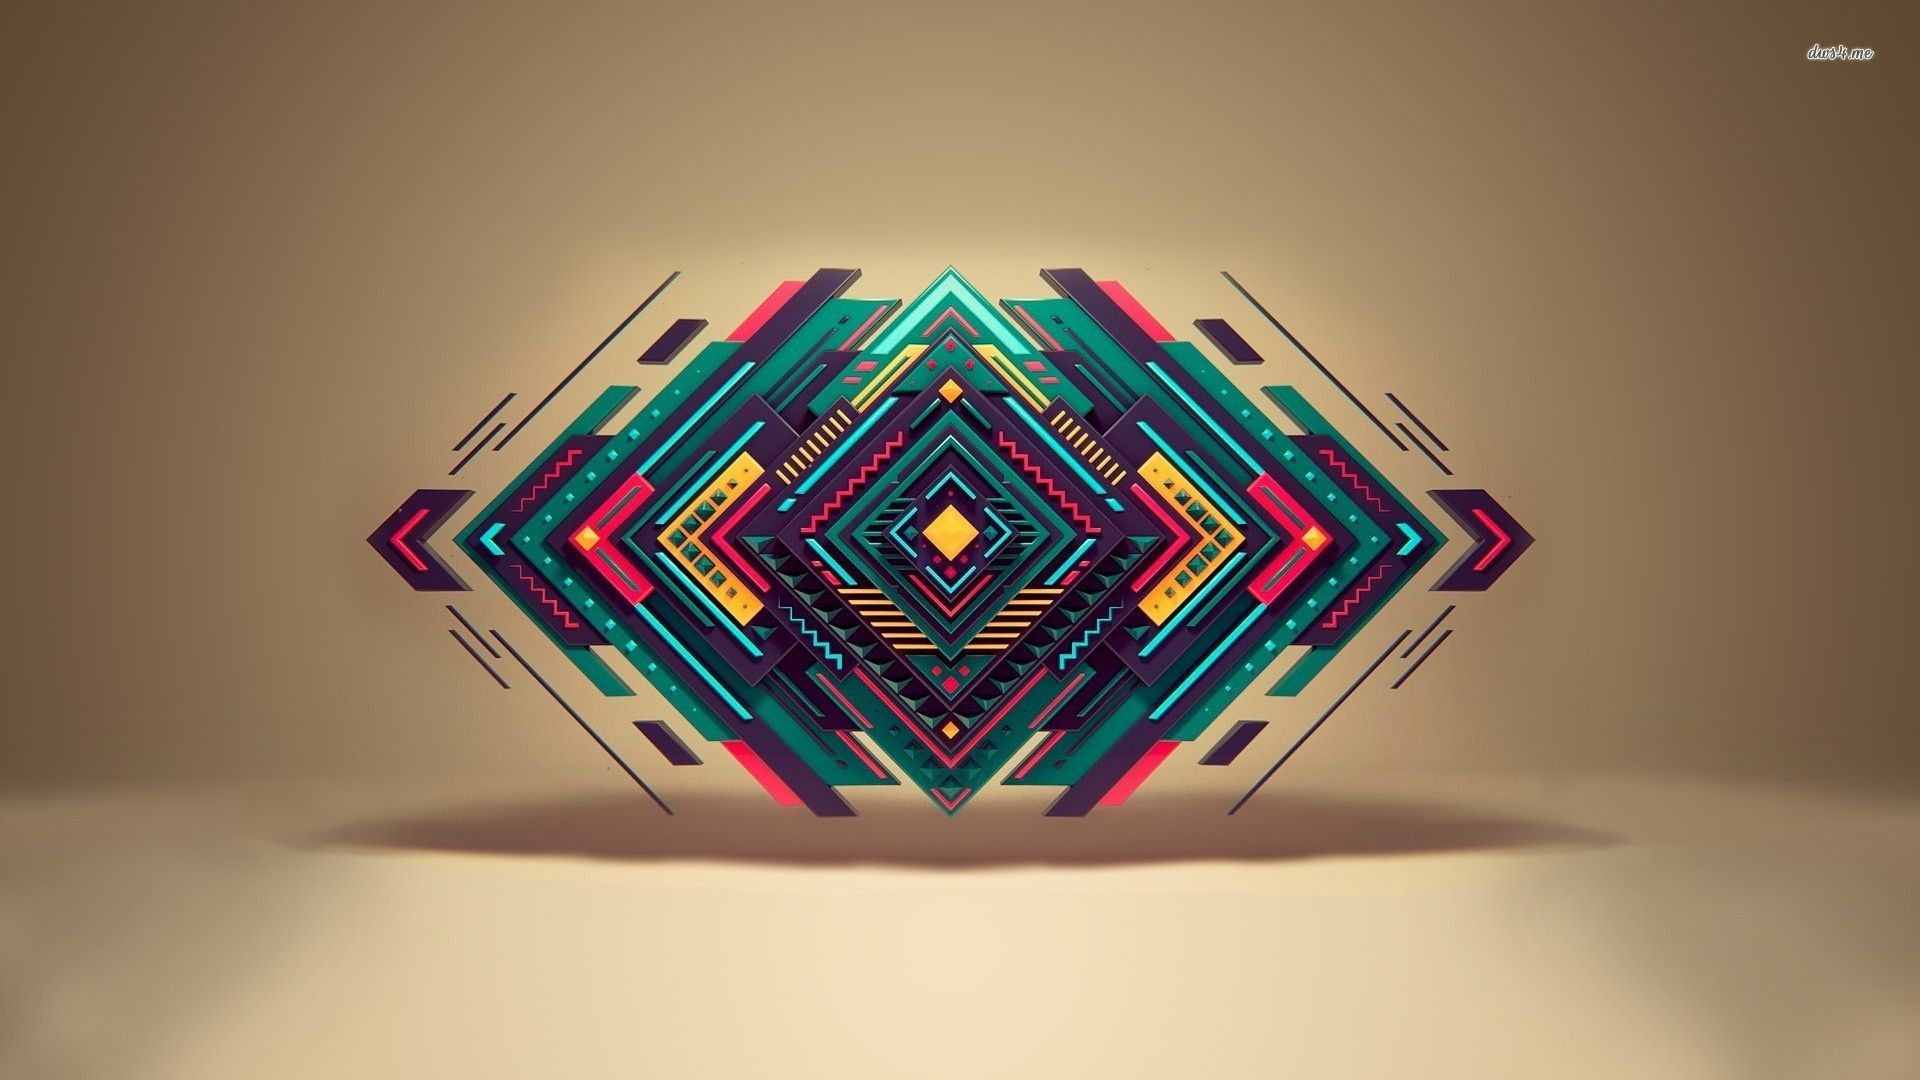 Last Abstract Wallpaper (For easy access)[1920x1080